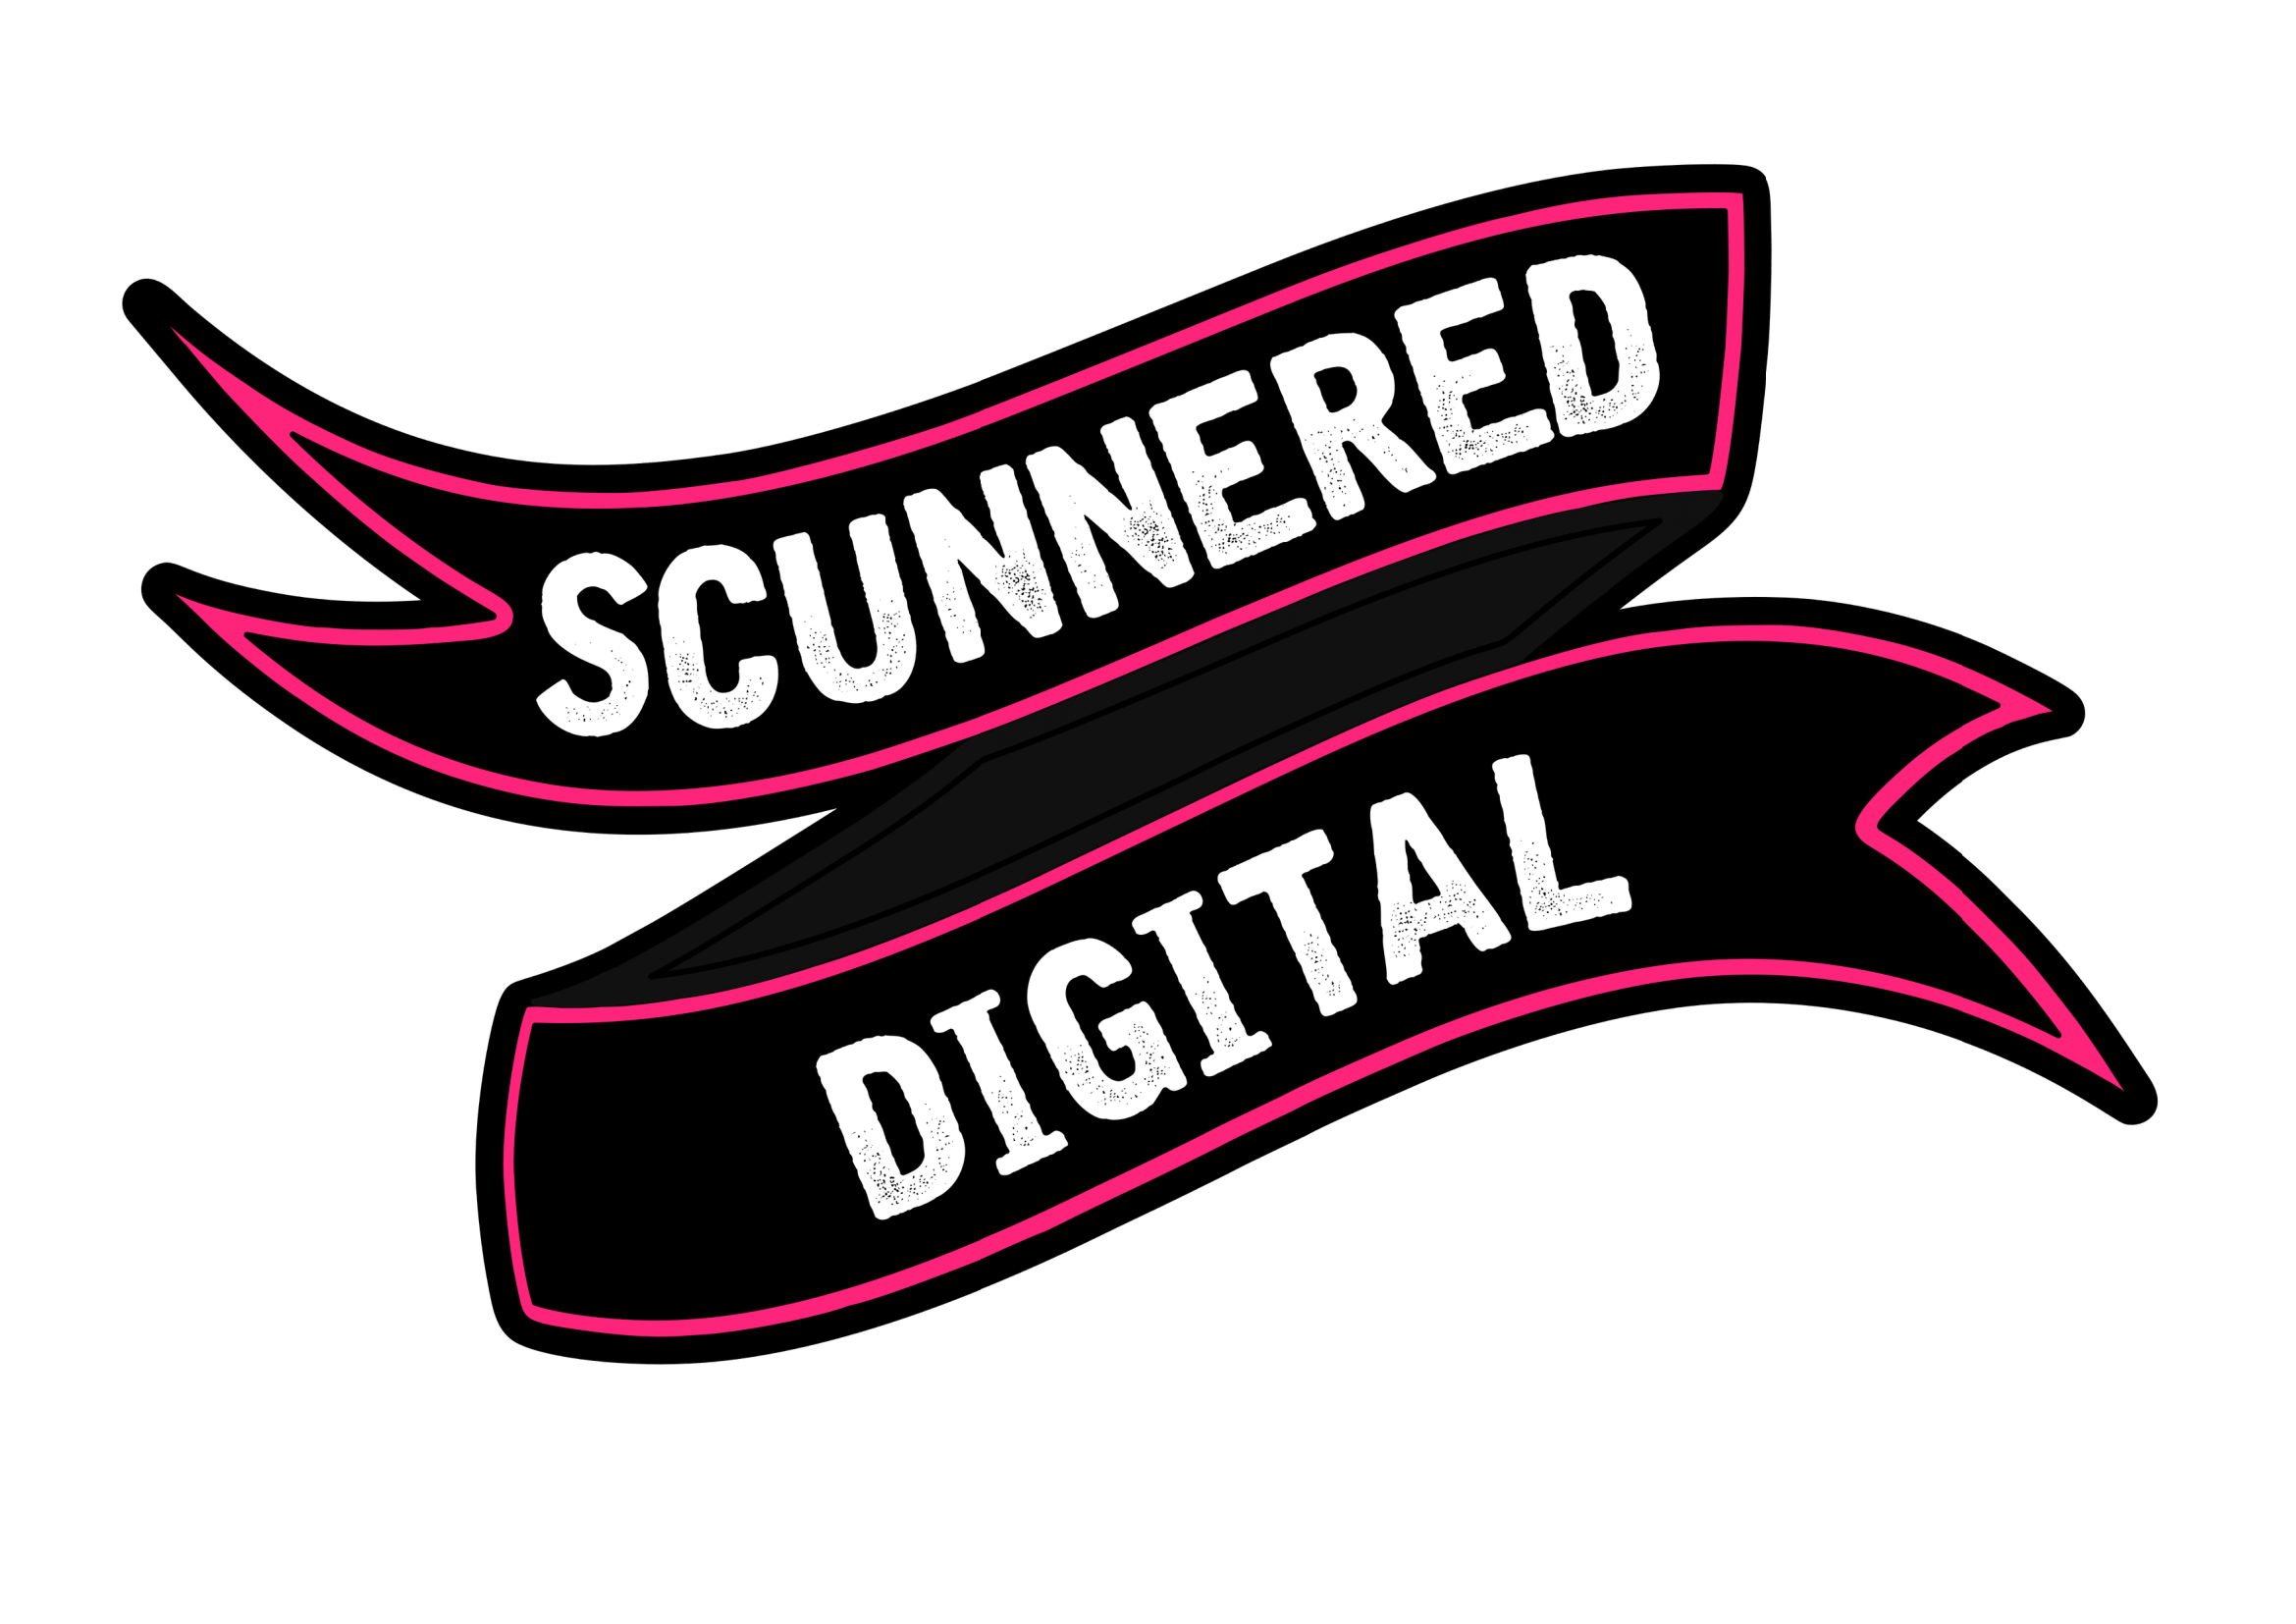 Scunnered Digital